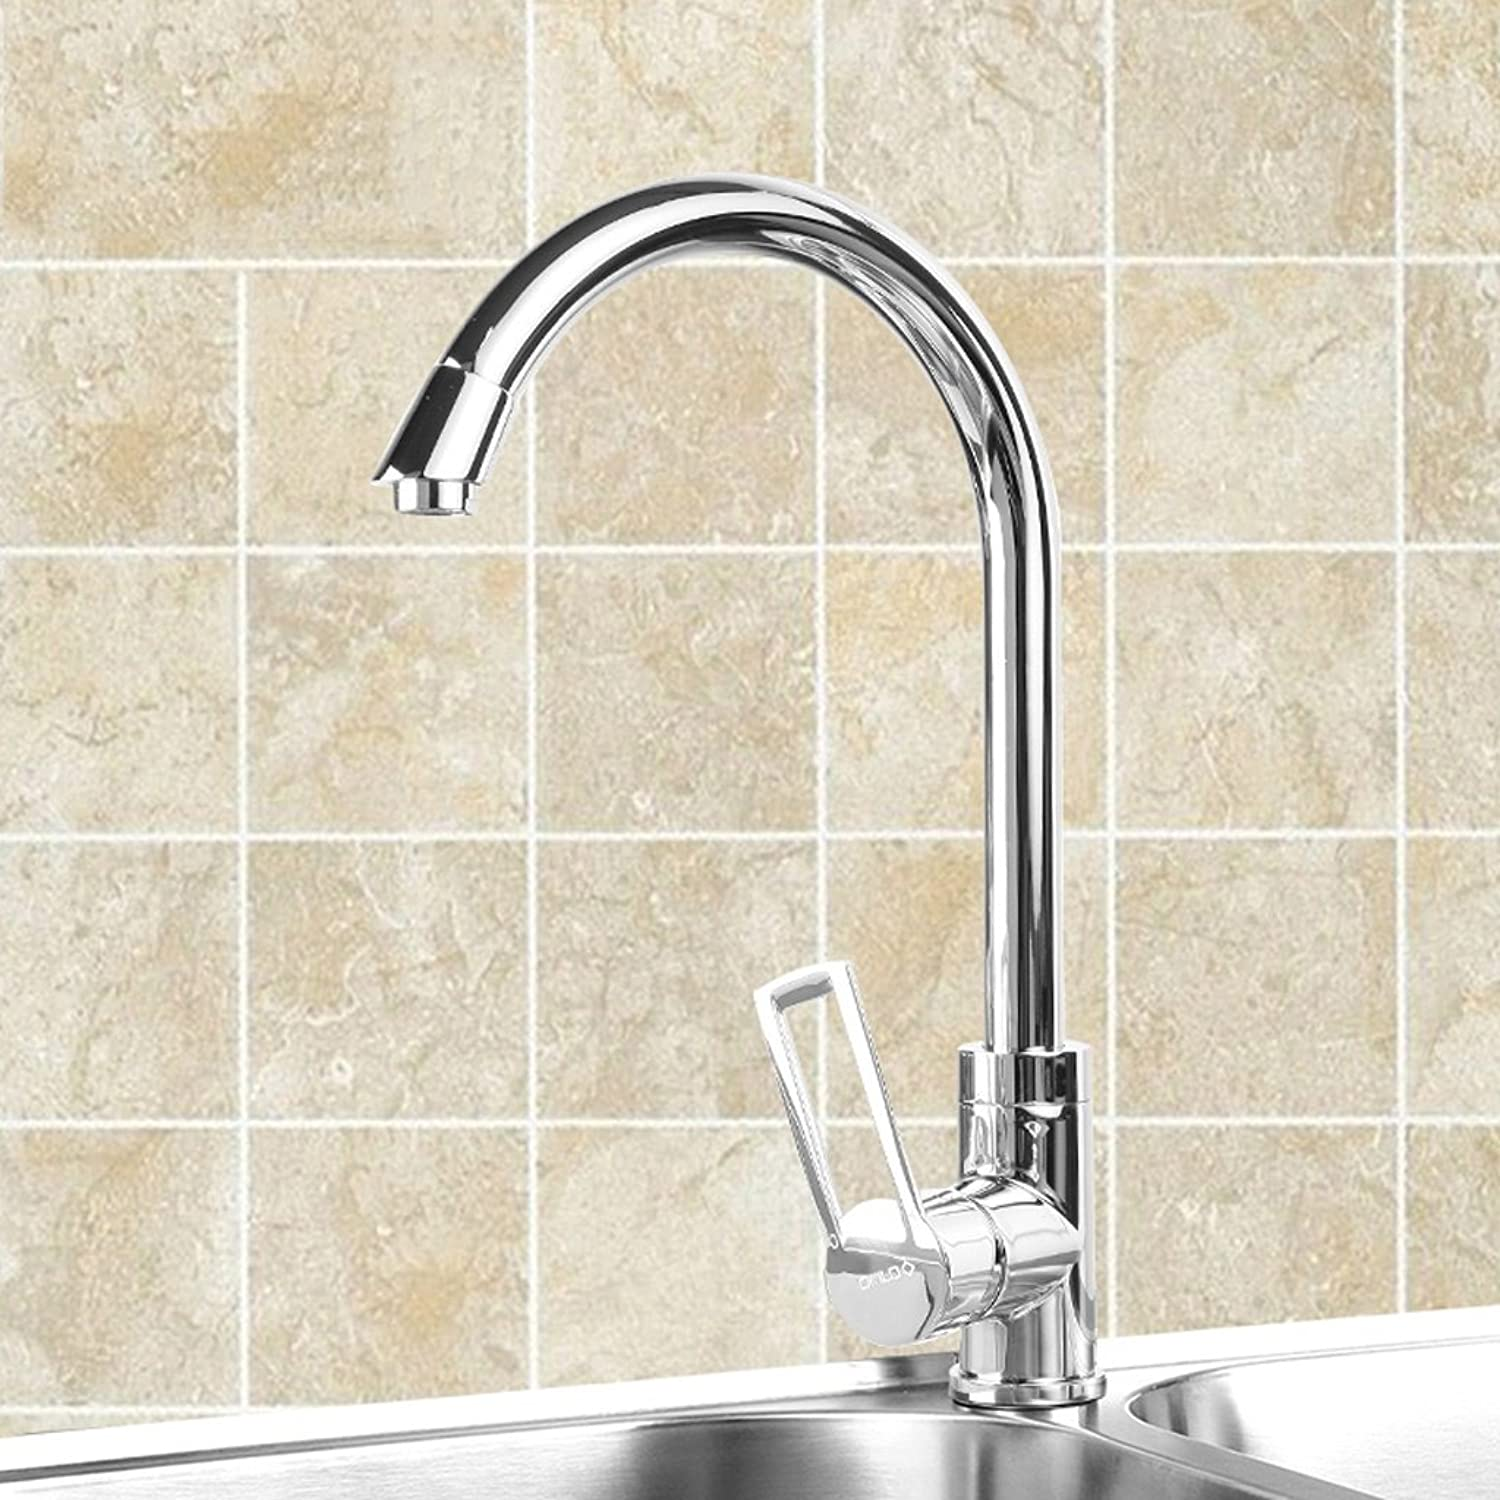 Sun LL Kitchen Faucets Hot And Cold Sink Faucet Vegetable Pots Copper Kitchen Faucet 360 Degree redation